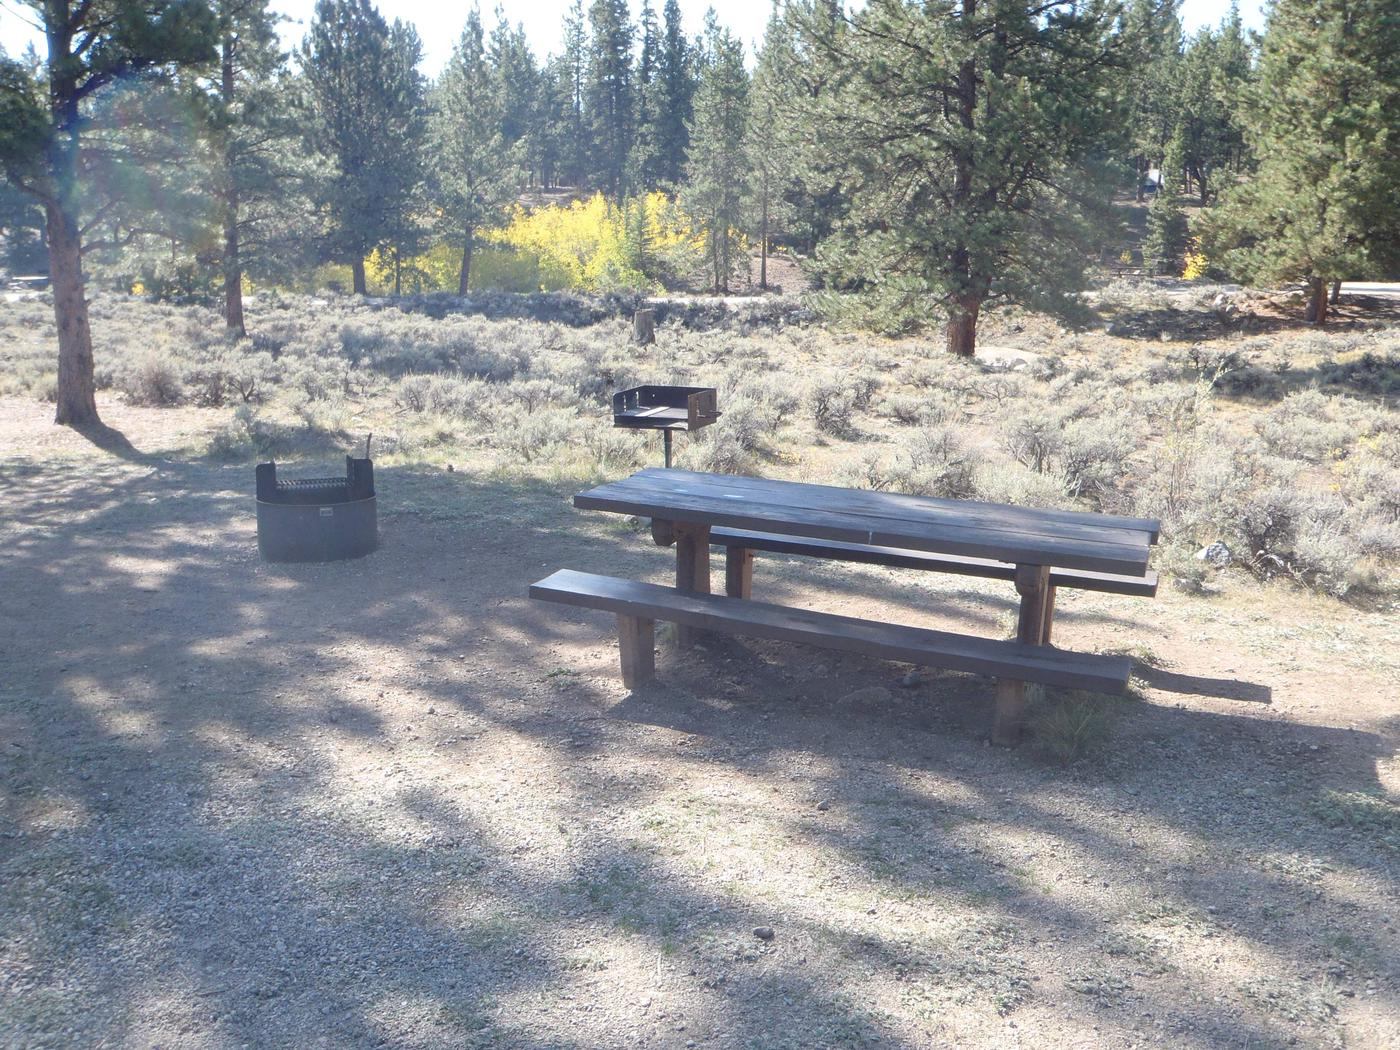 White Star Campground, site 55 picnic table and fire ring